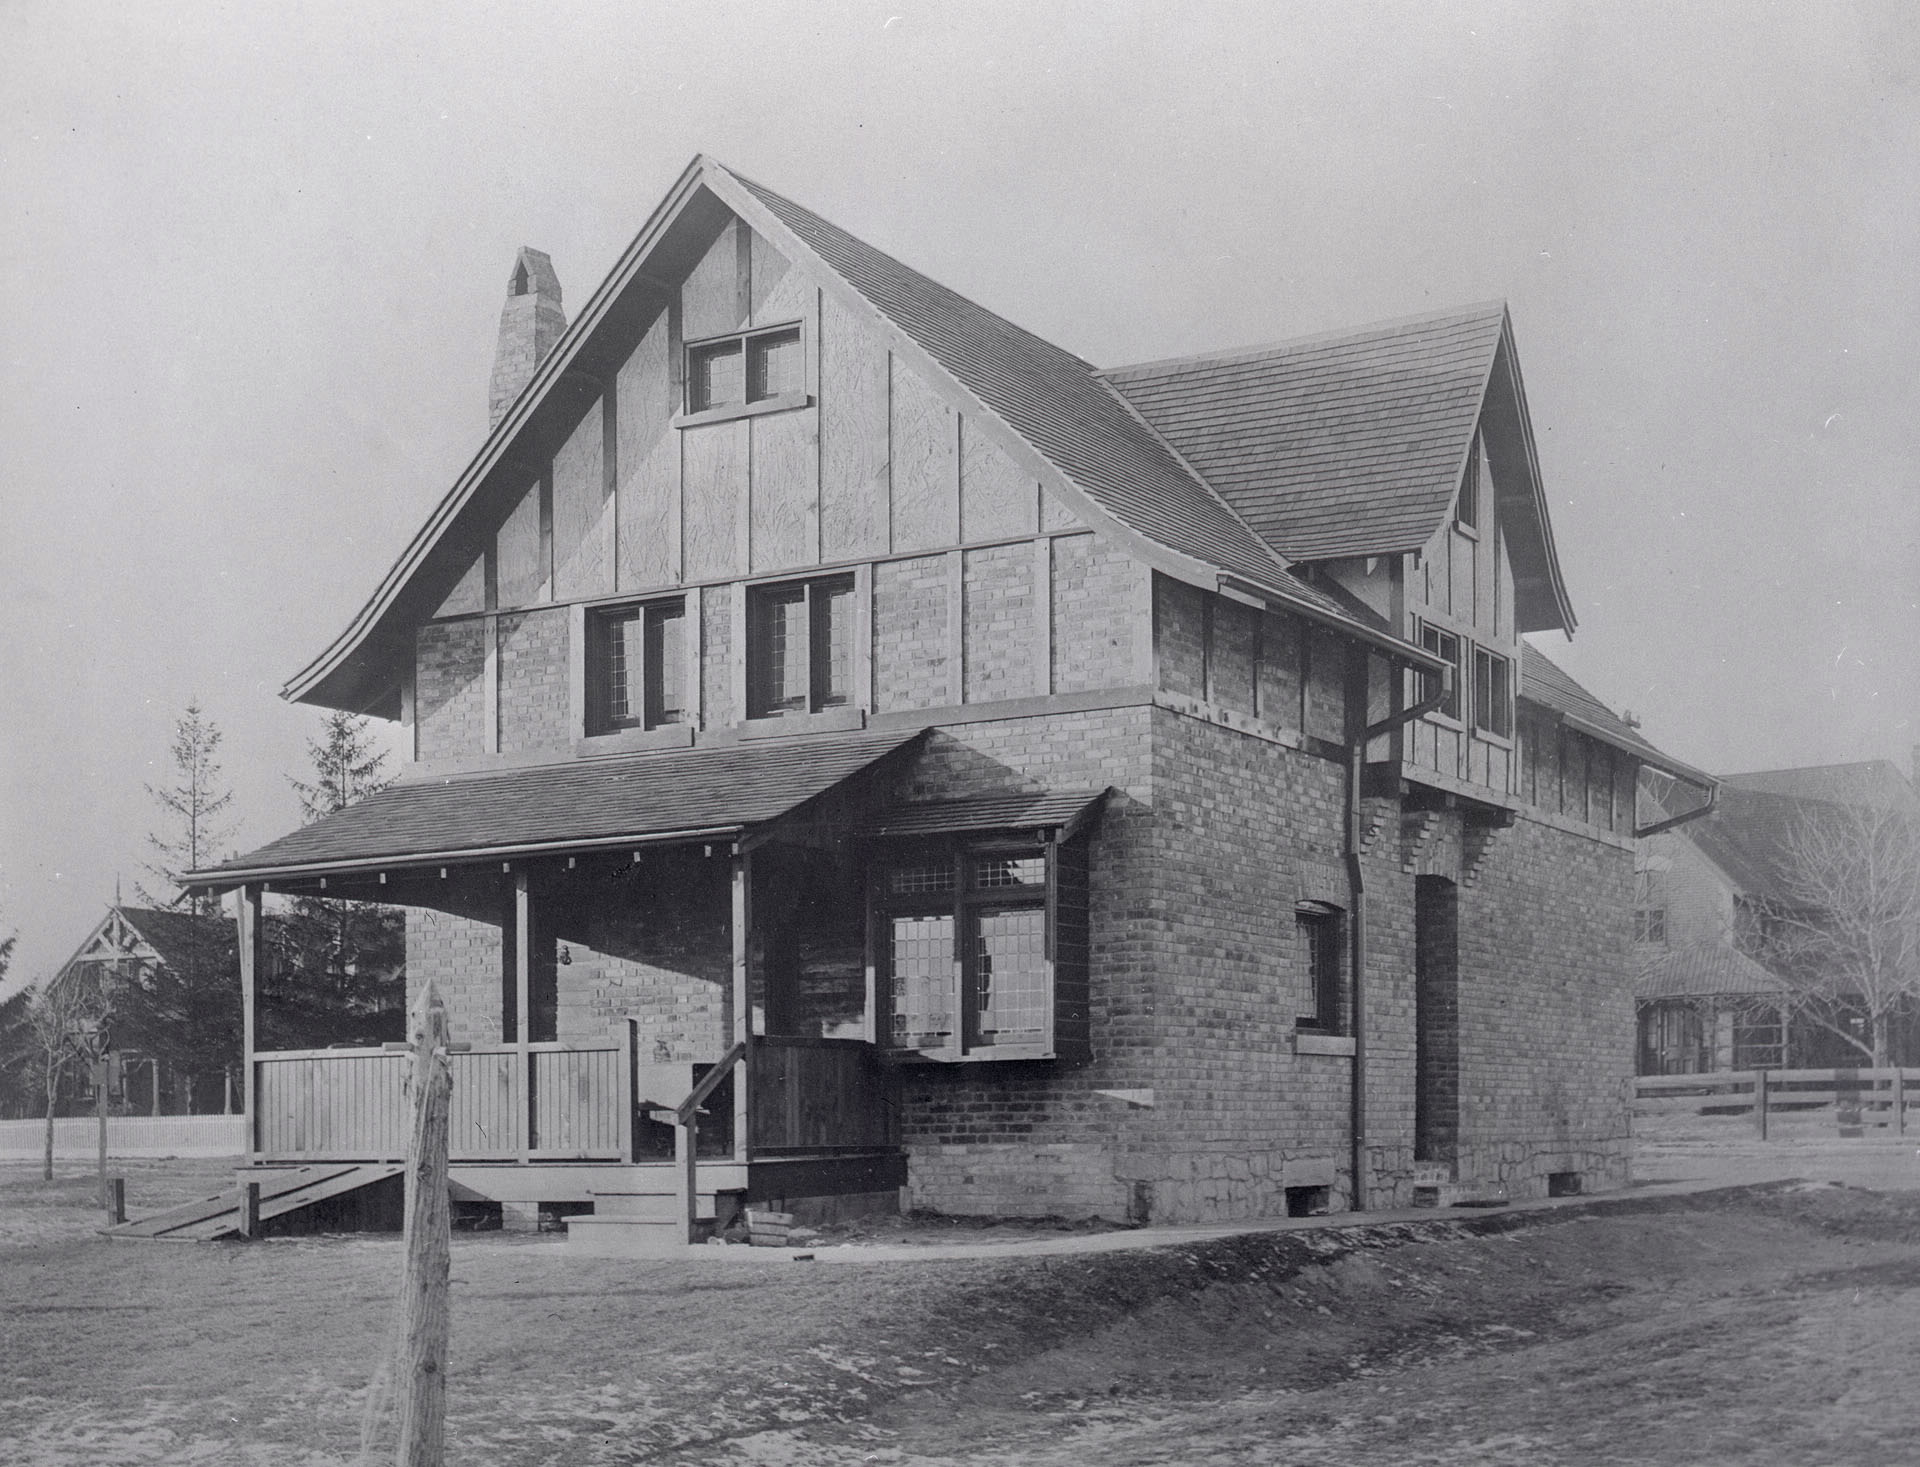 Owen Staples House, Hogarth Ave., s. side, between Ingham & Hampton Aves.; rear, looking n.w., 1905